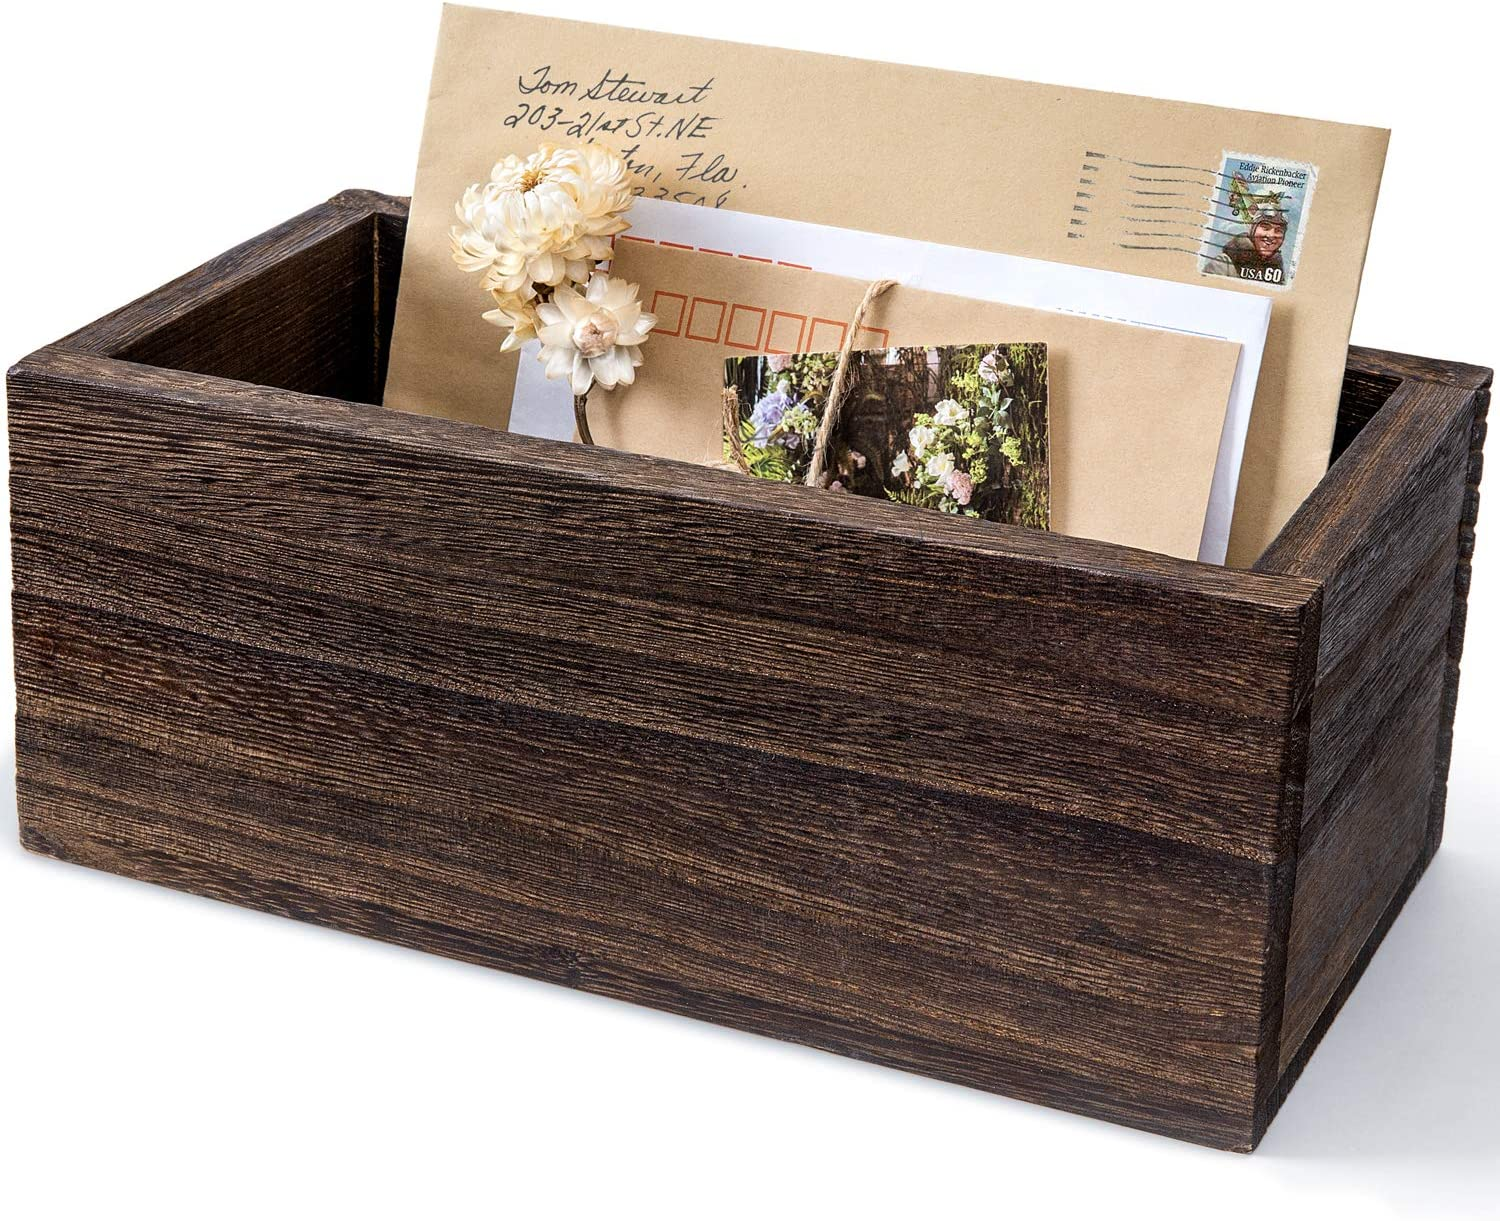 Dahey Wood Mail Organizer for Countertop Rustic Mail Holder Desk Letter Bill Envelope Accessories Storage Box Decorative Mail Sorter for Tabletop Home Office Kitchen : Office Products